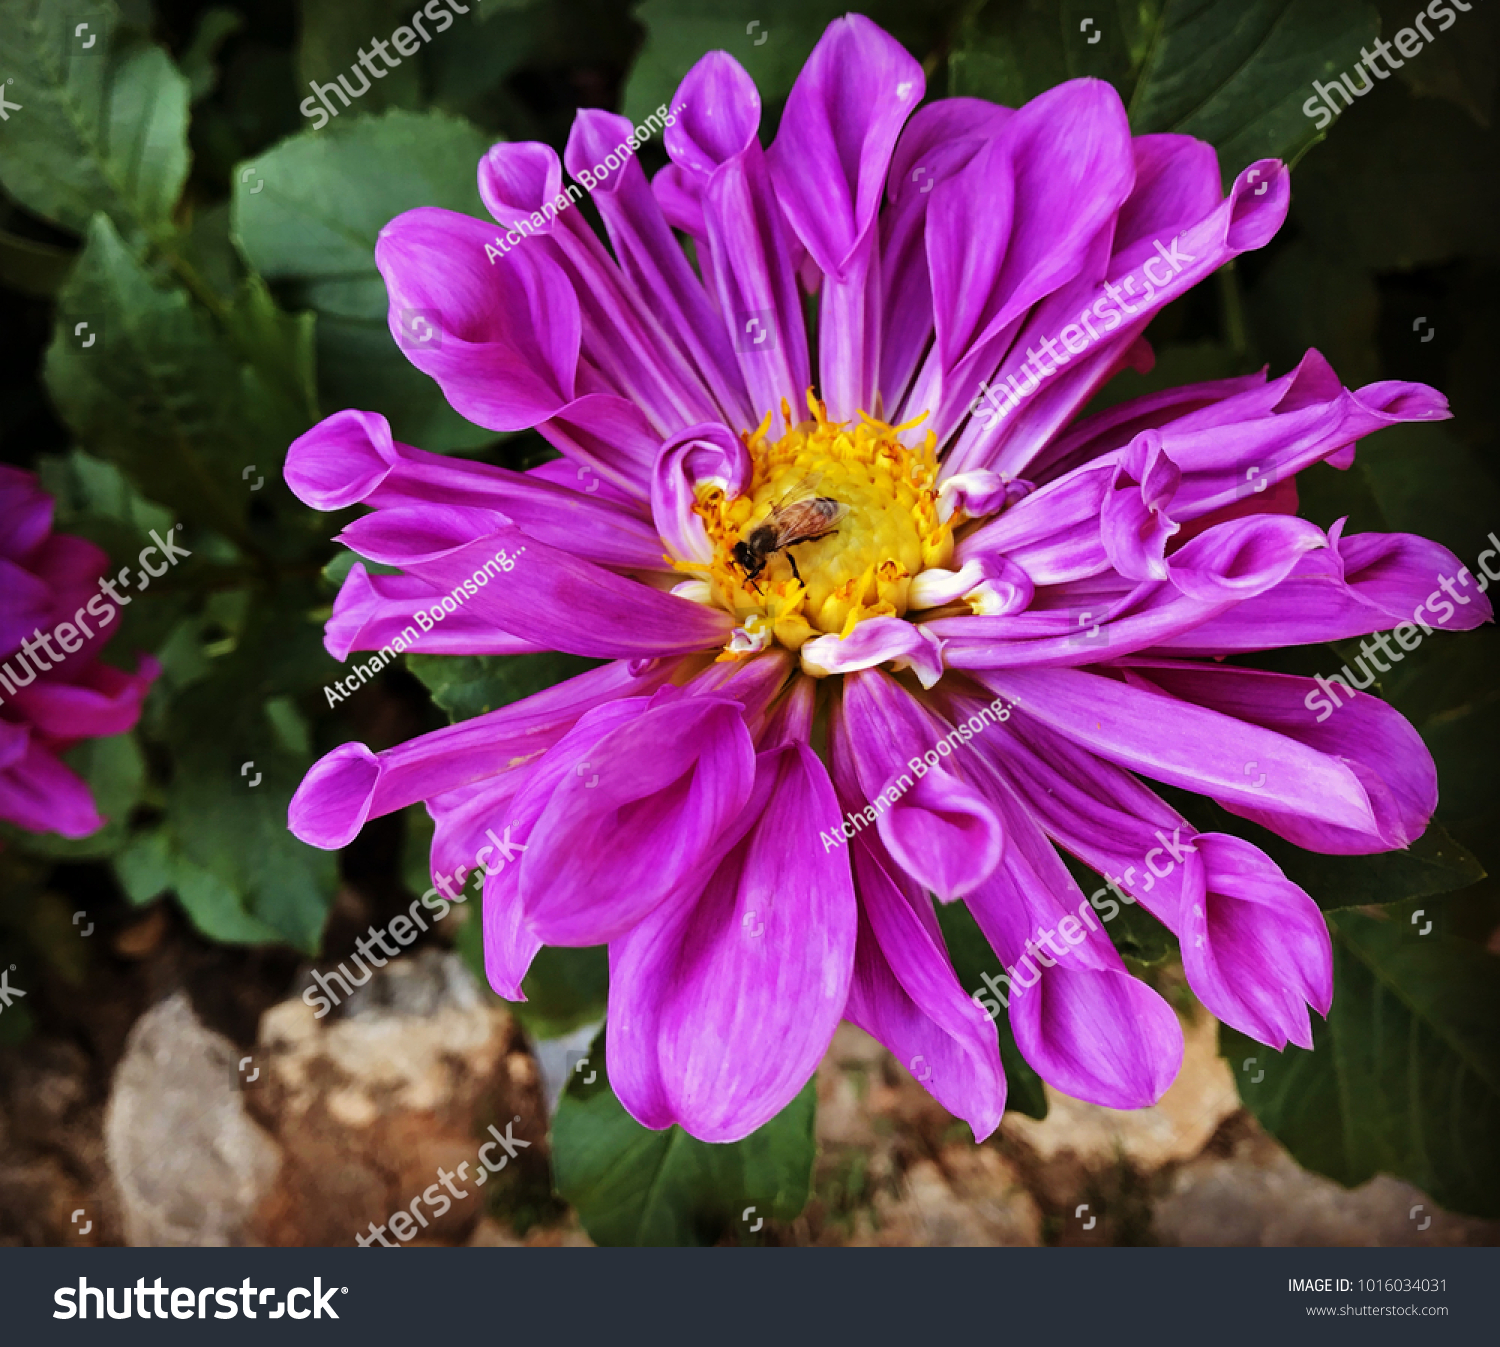 Dahlia flower garden meaning instability unstable stock photo edit dahlia flower in the garden meaning of instability unstable purple color izmirmasajfo